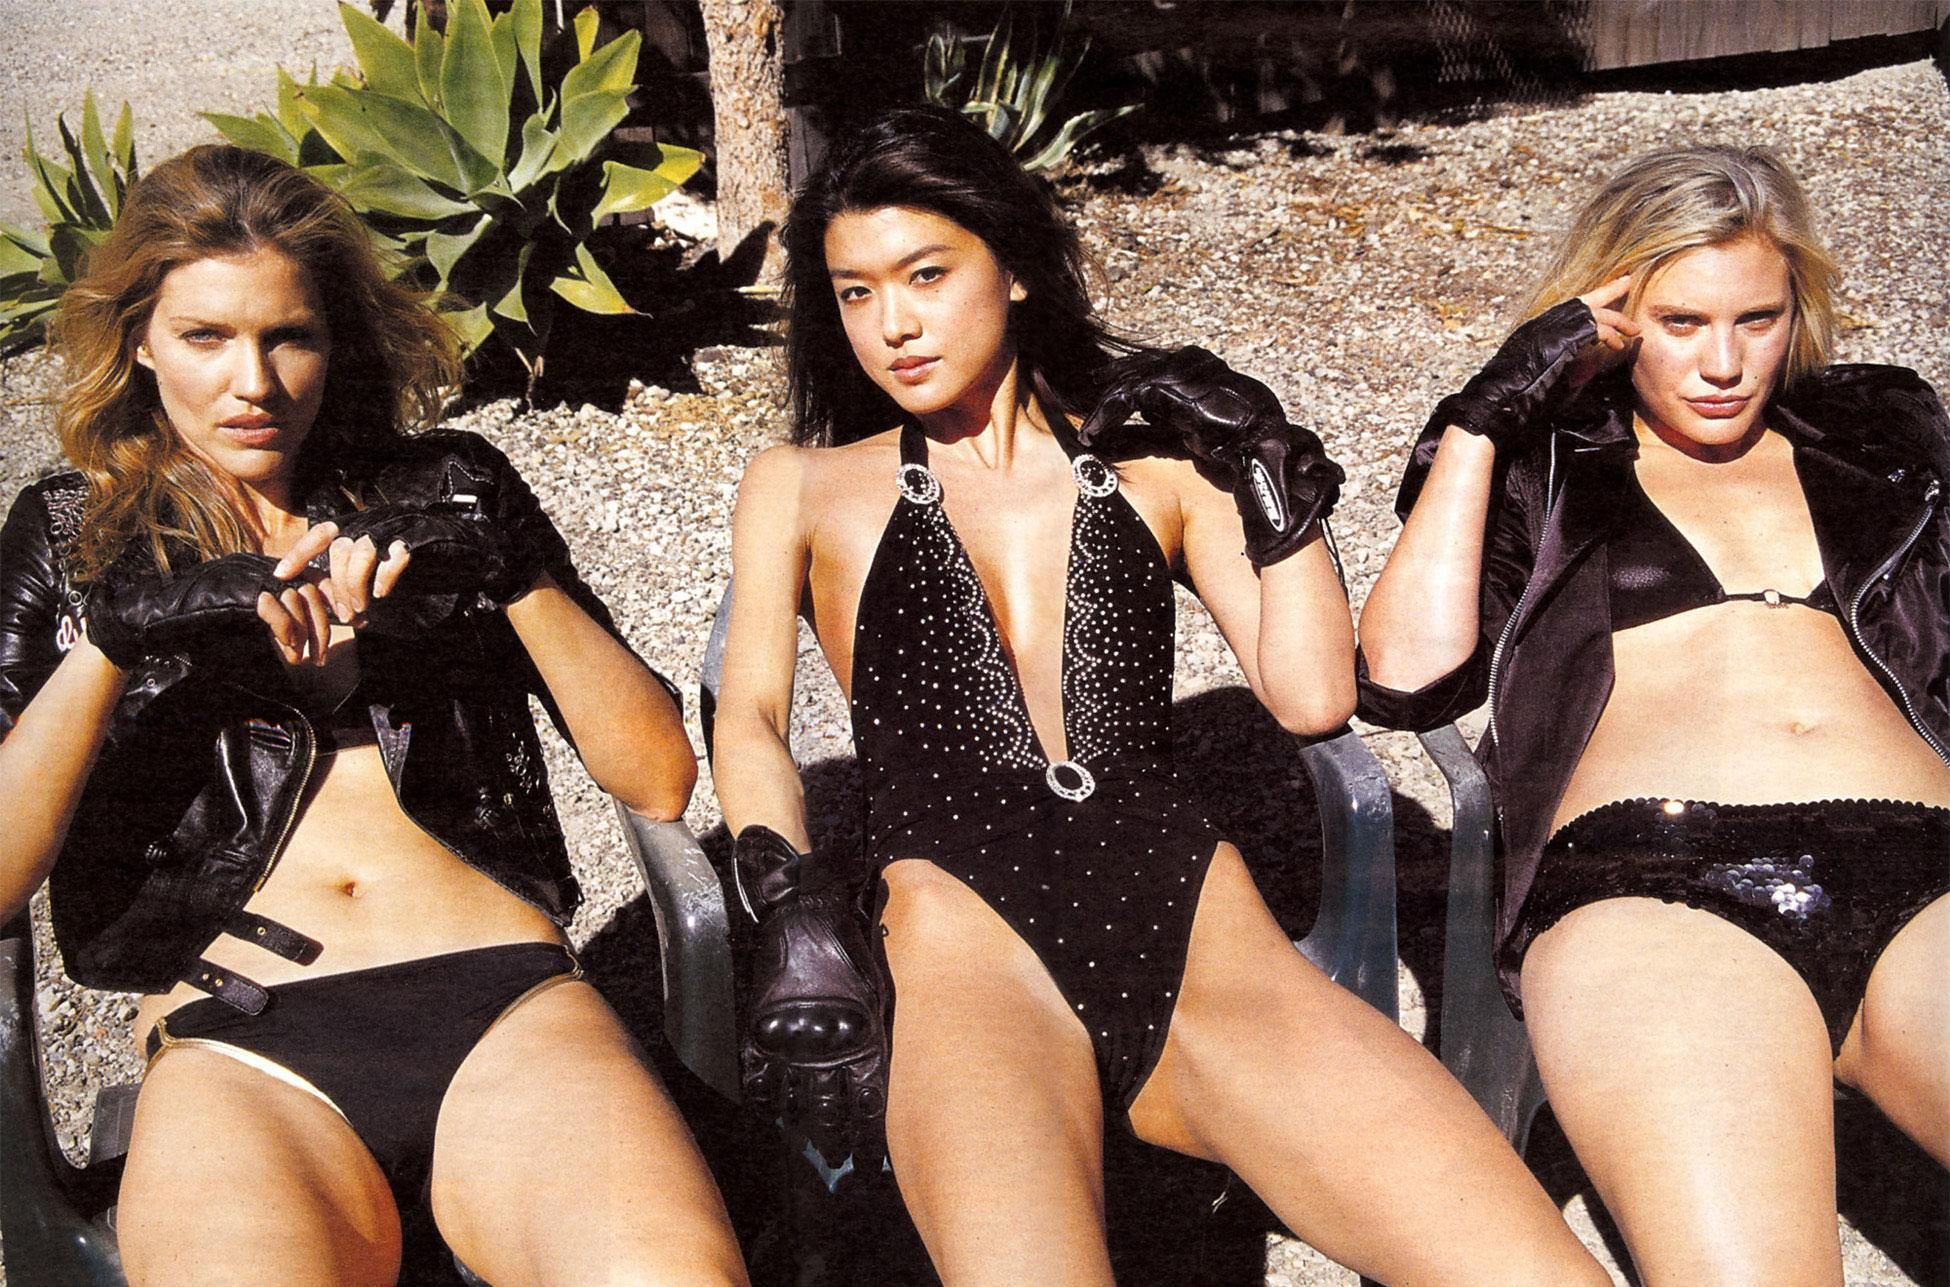 Hot pussy pics of grace park apologise, but